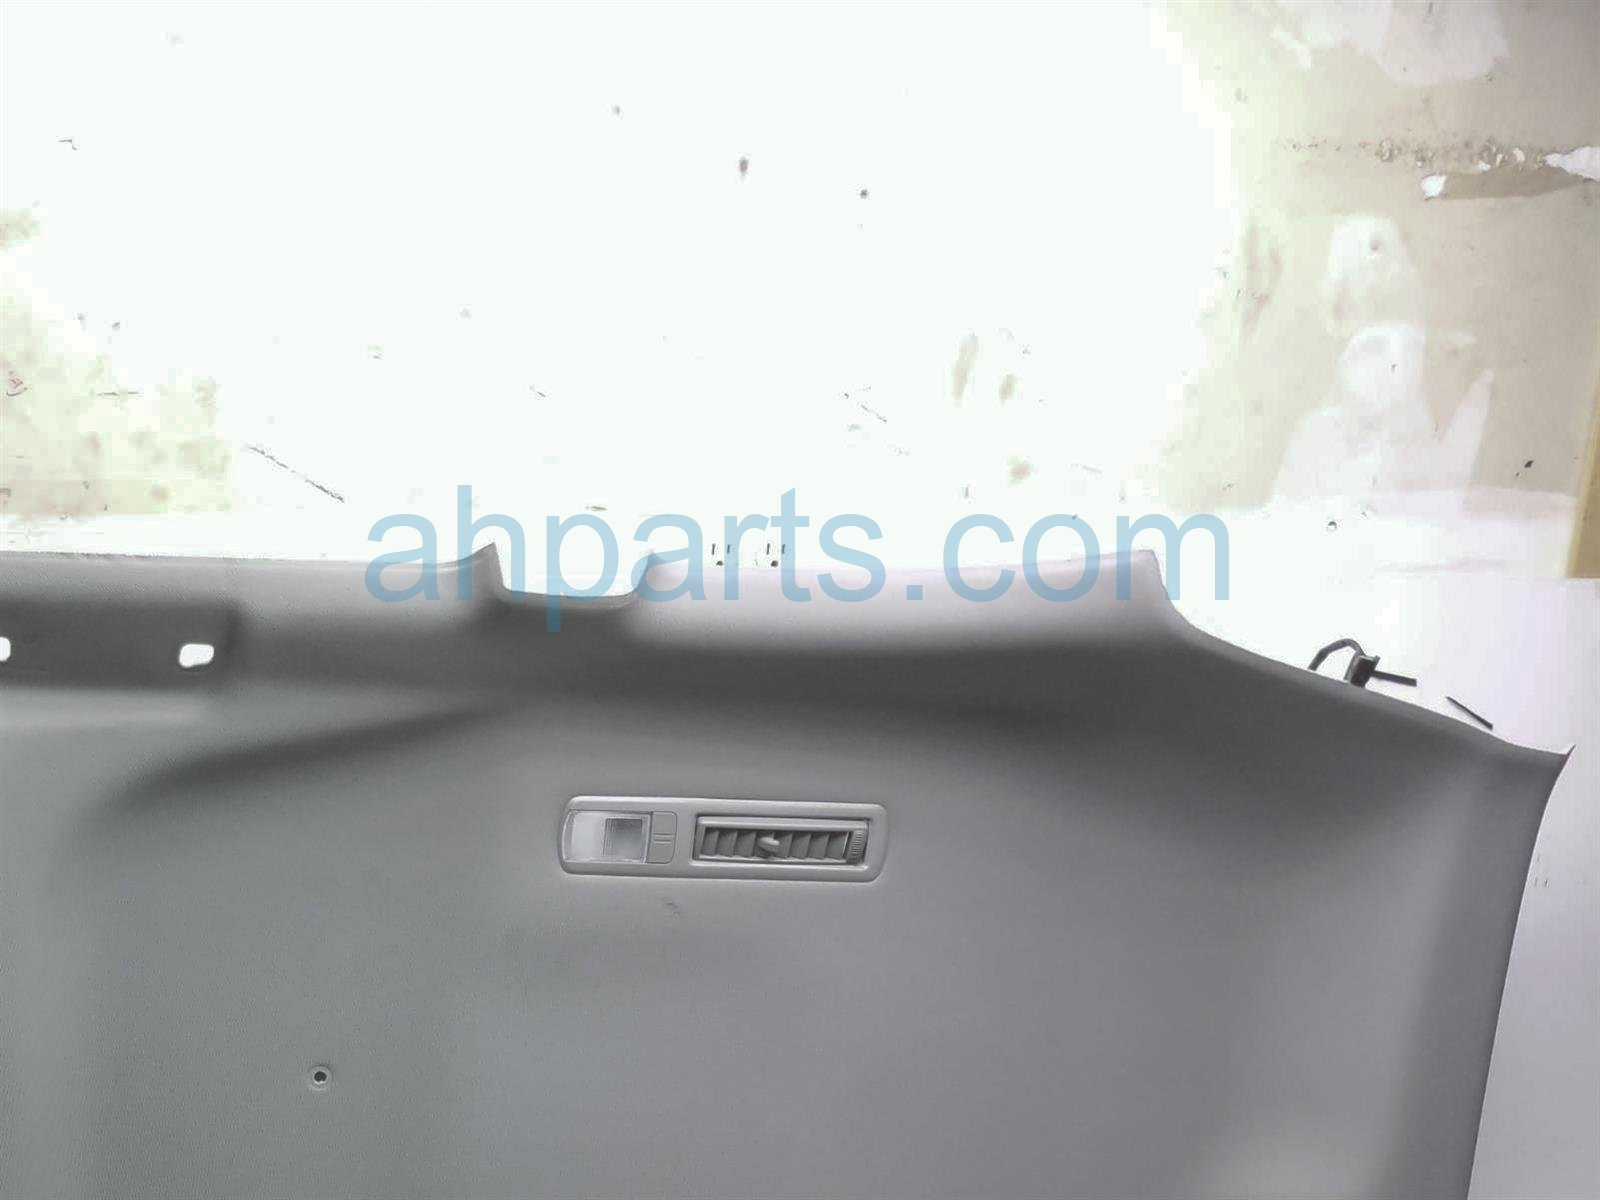 2014 Toyota Highlander Headliner / Roof Lining   Gray 63300 0EL10 A0 Replacement